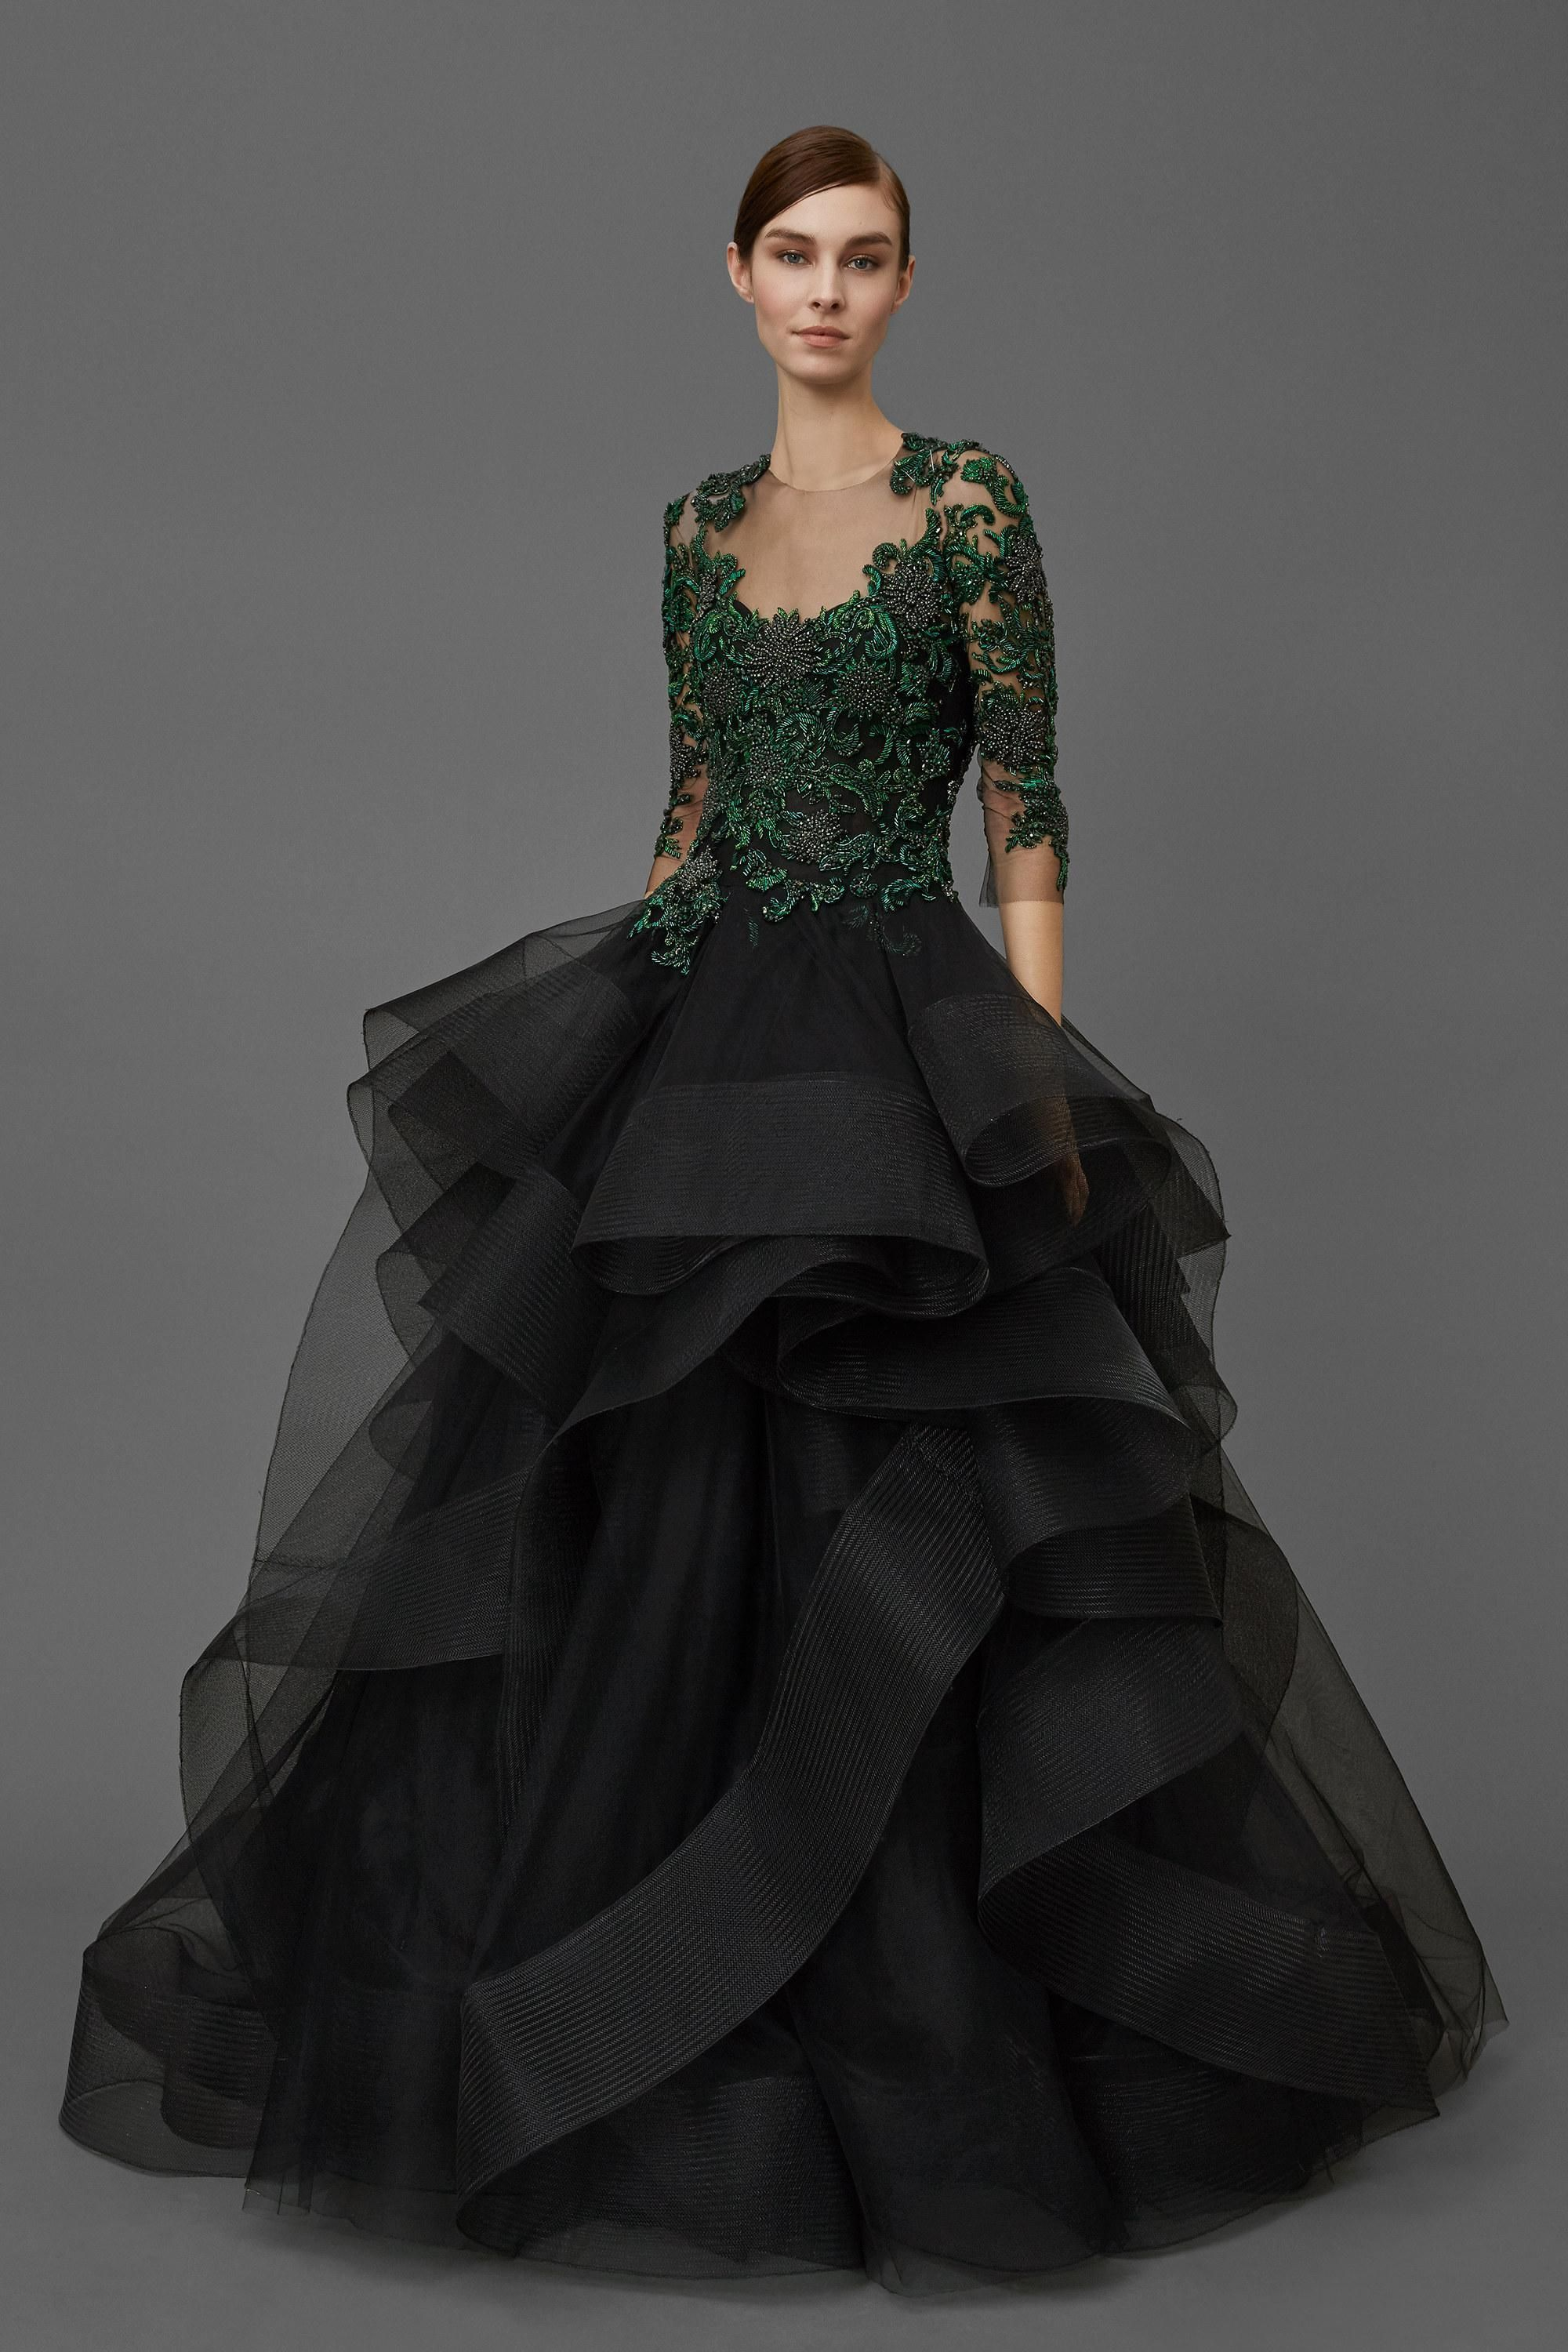 new arrival ball gown evening dresses long sleeves black green